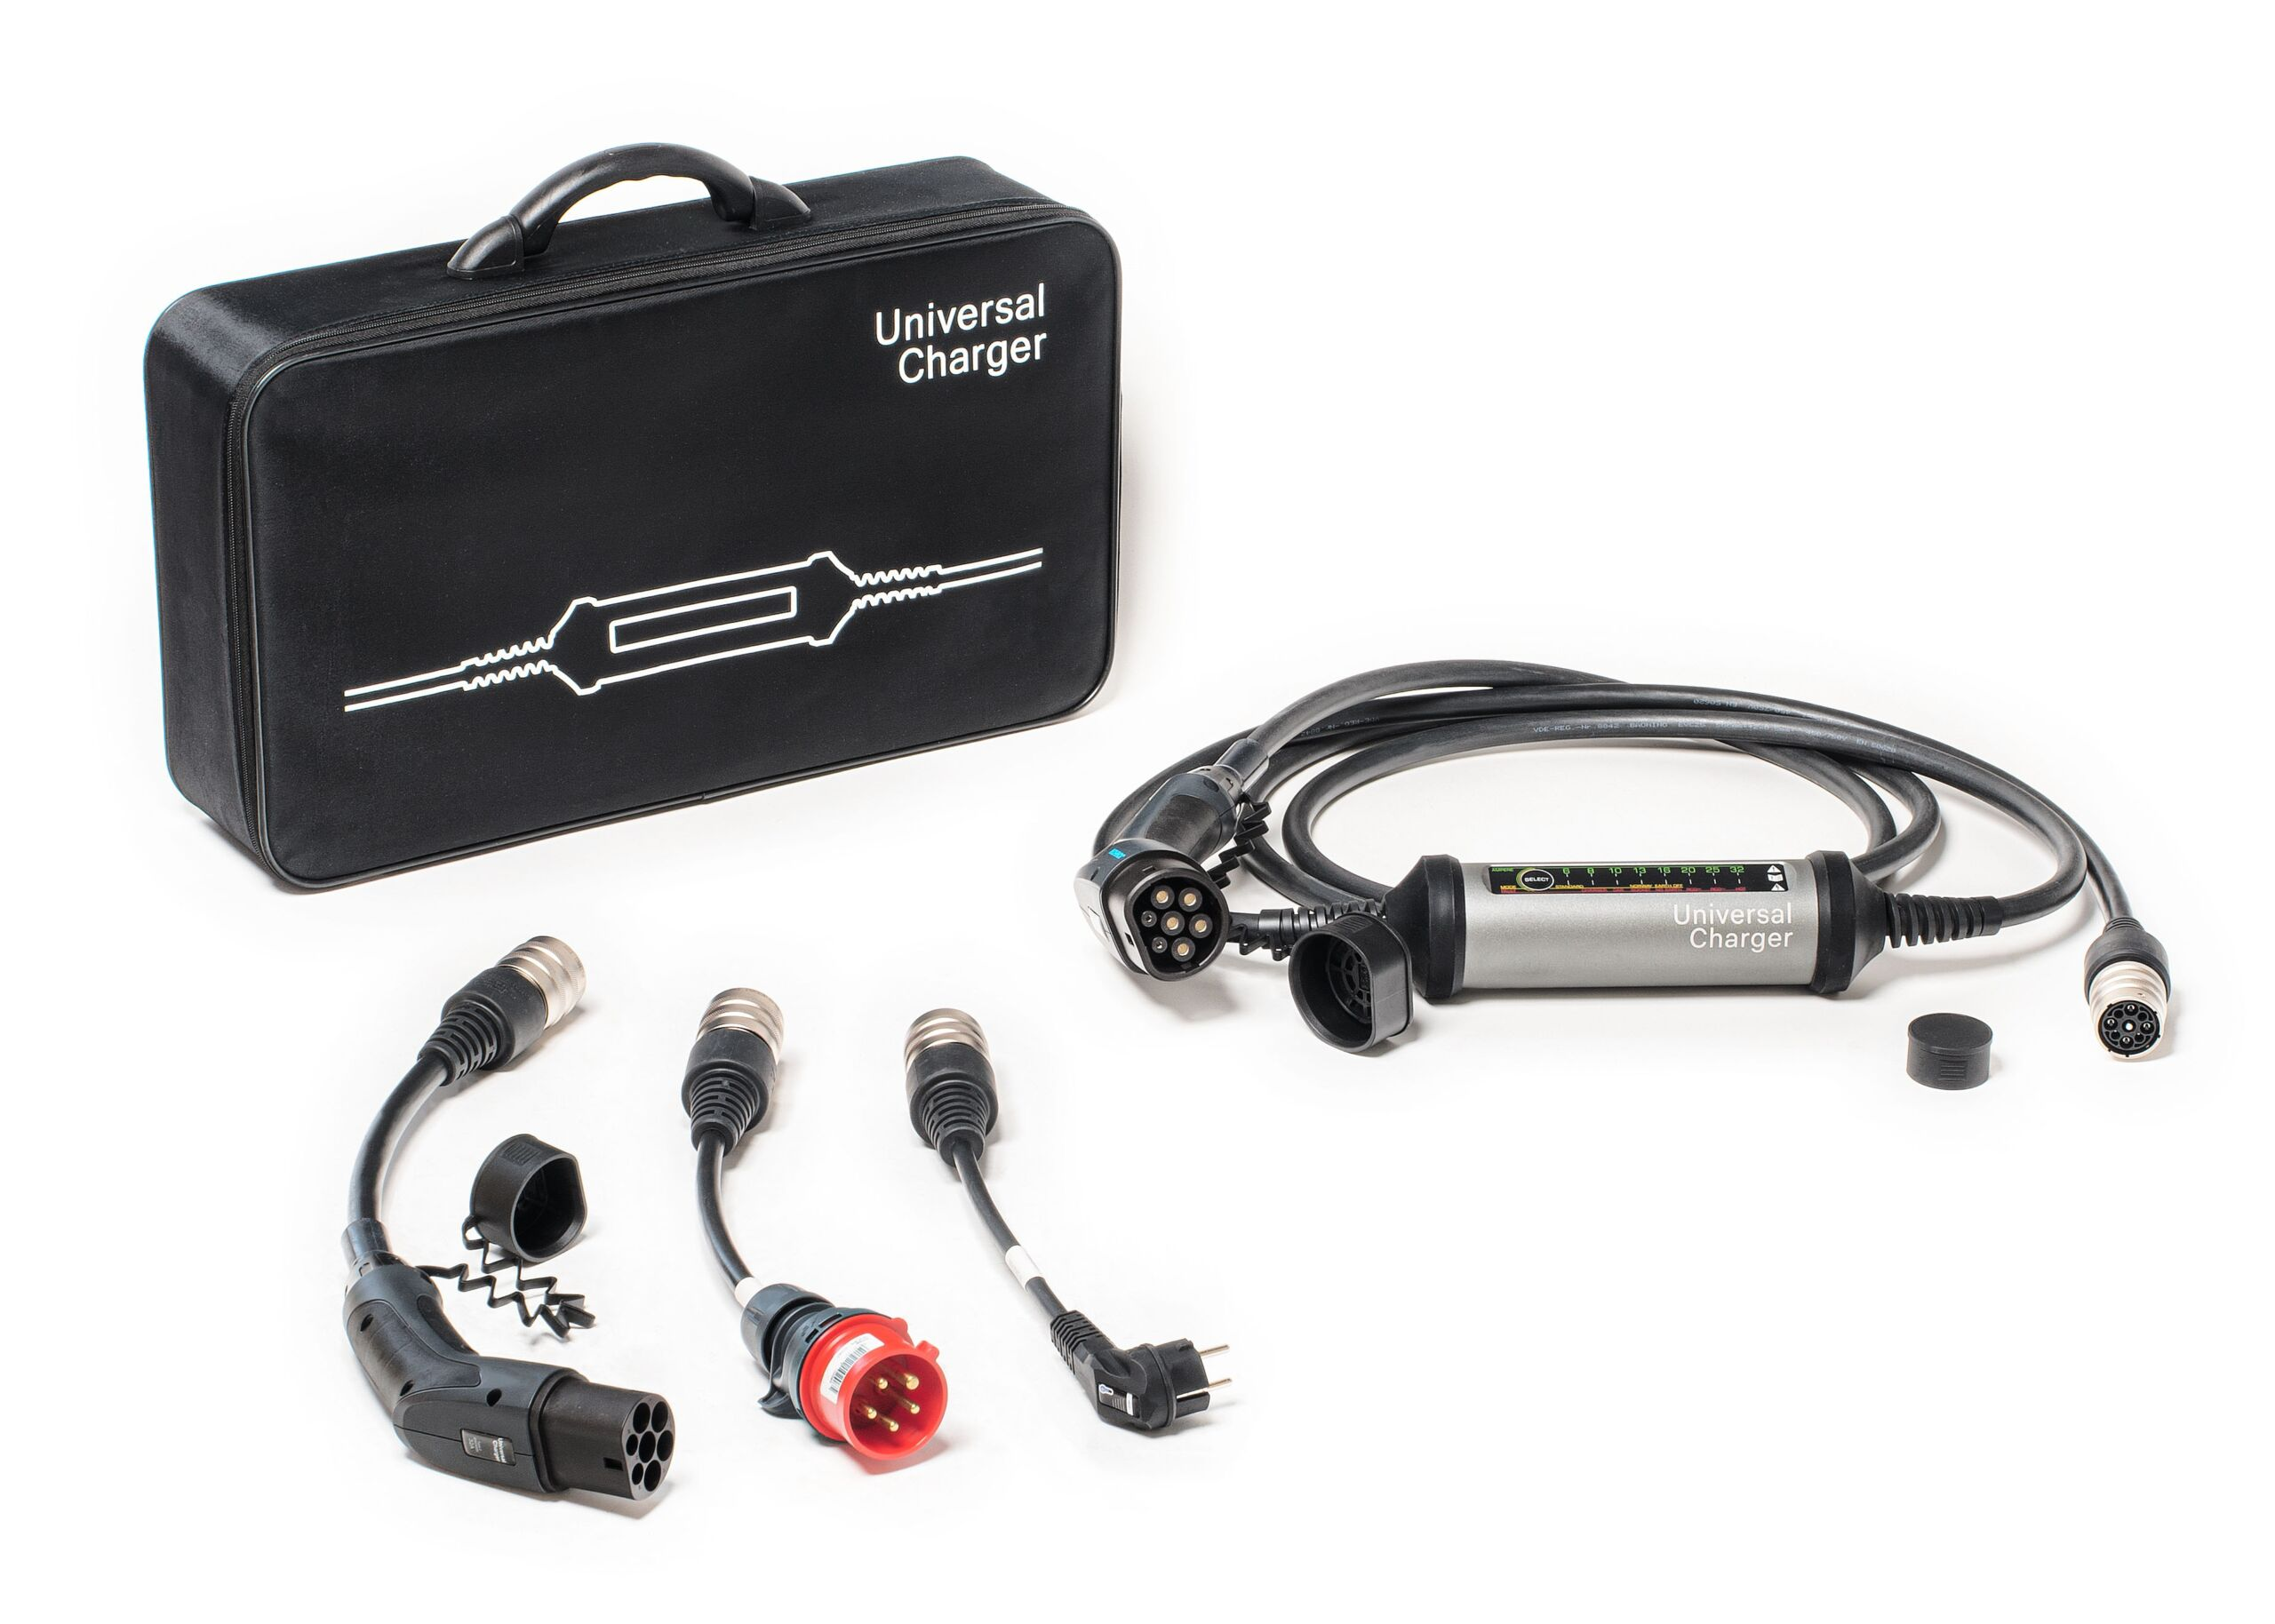 Opel Universal Charger